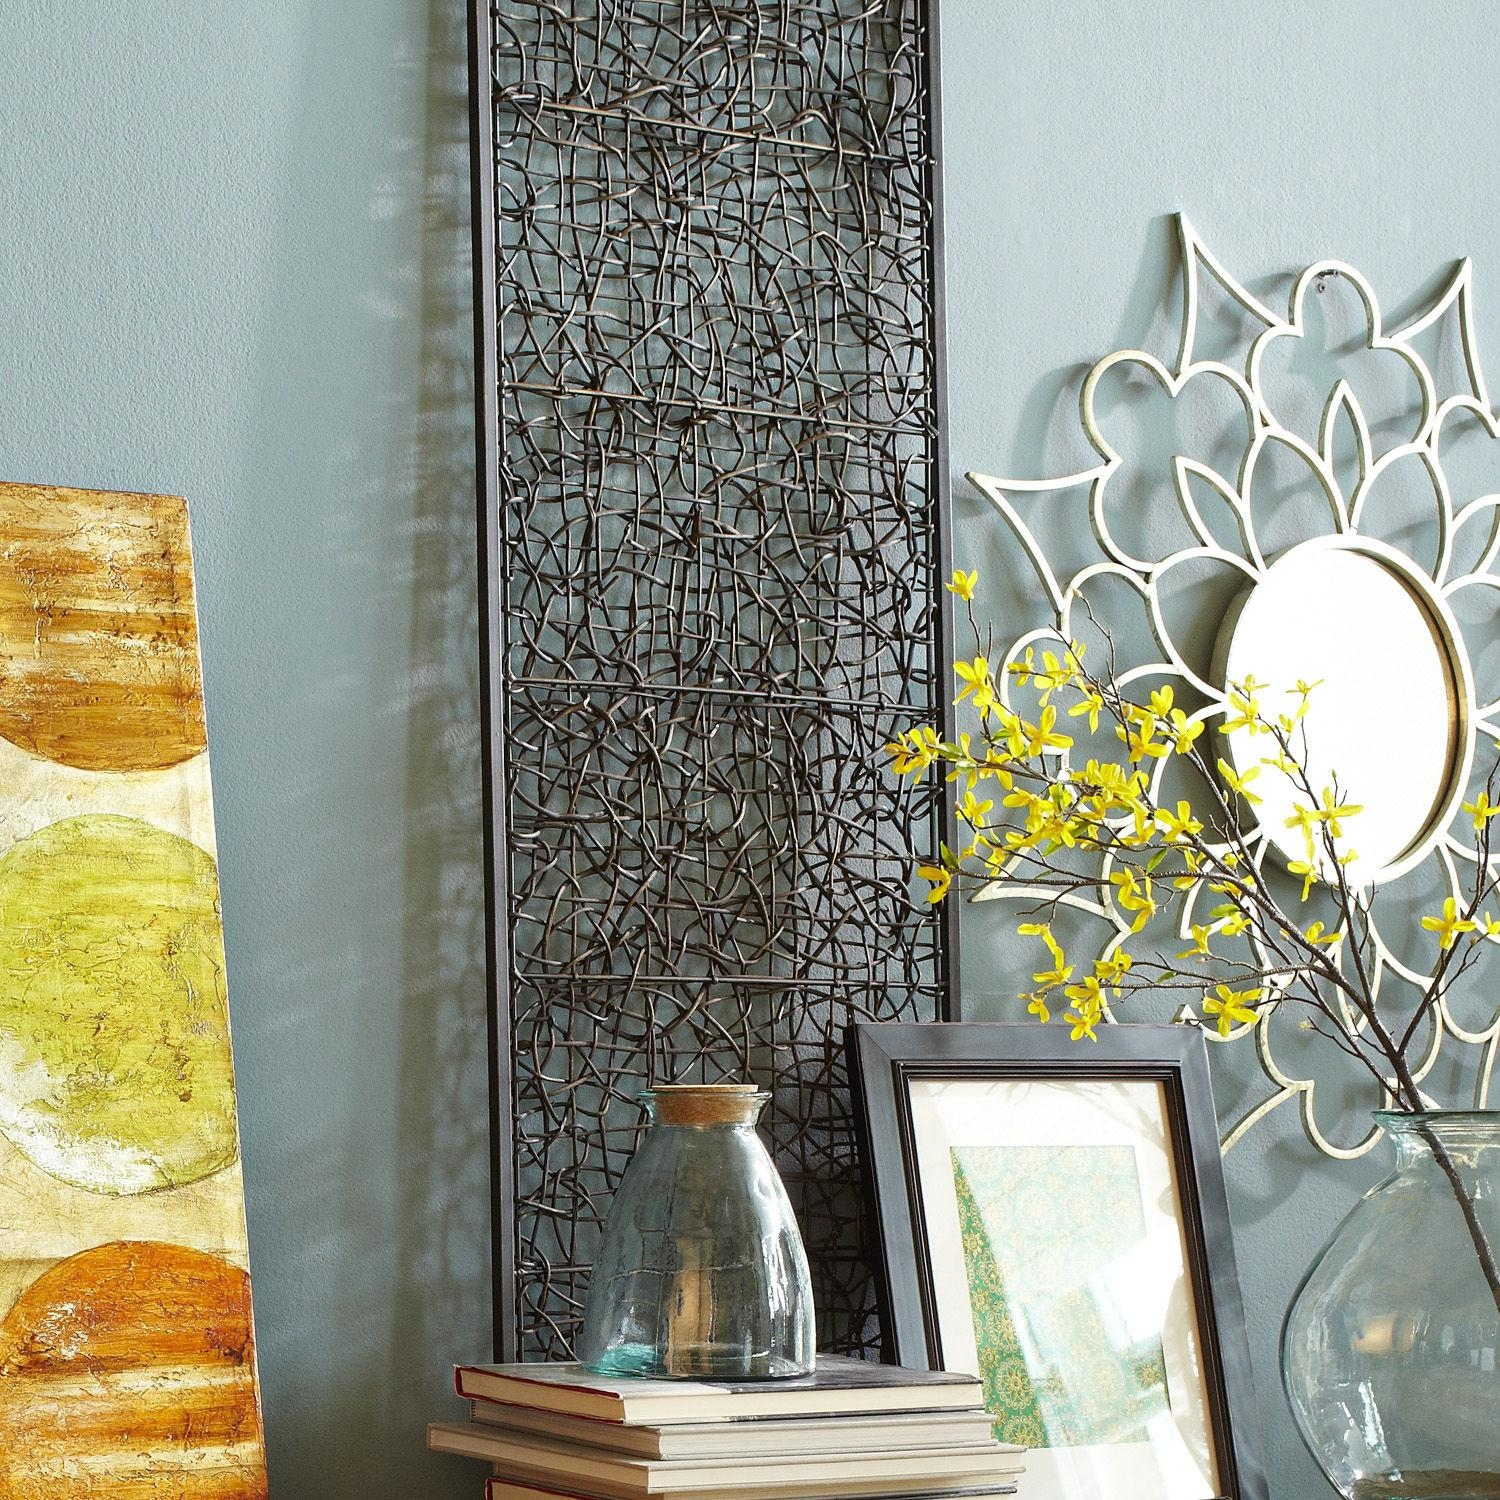 Wall Decor: Wicker Wall Decor Images. Trendy Wall (Image 14 of 20)